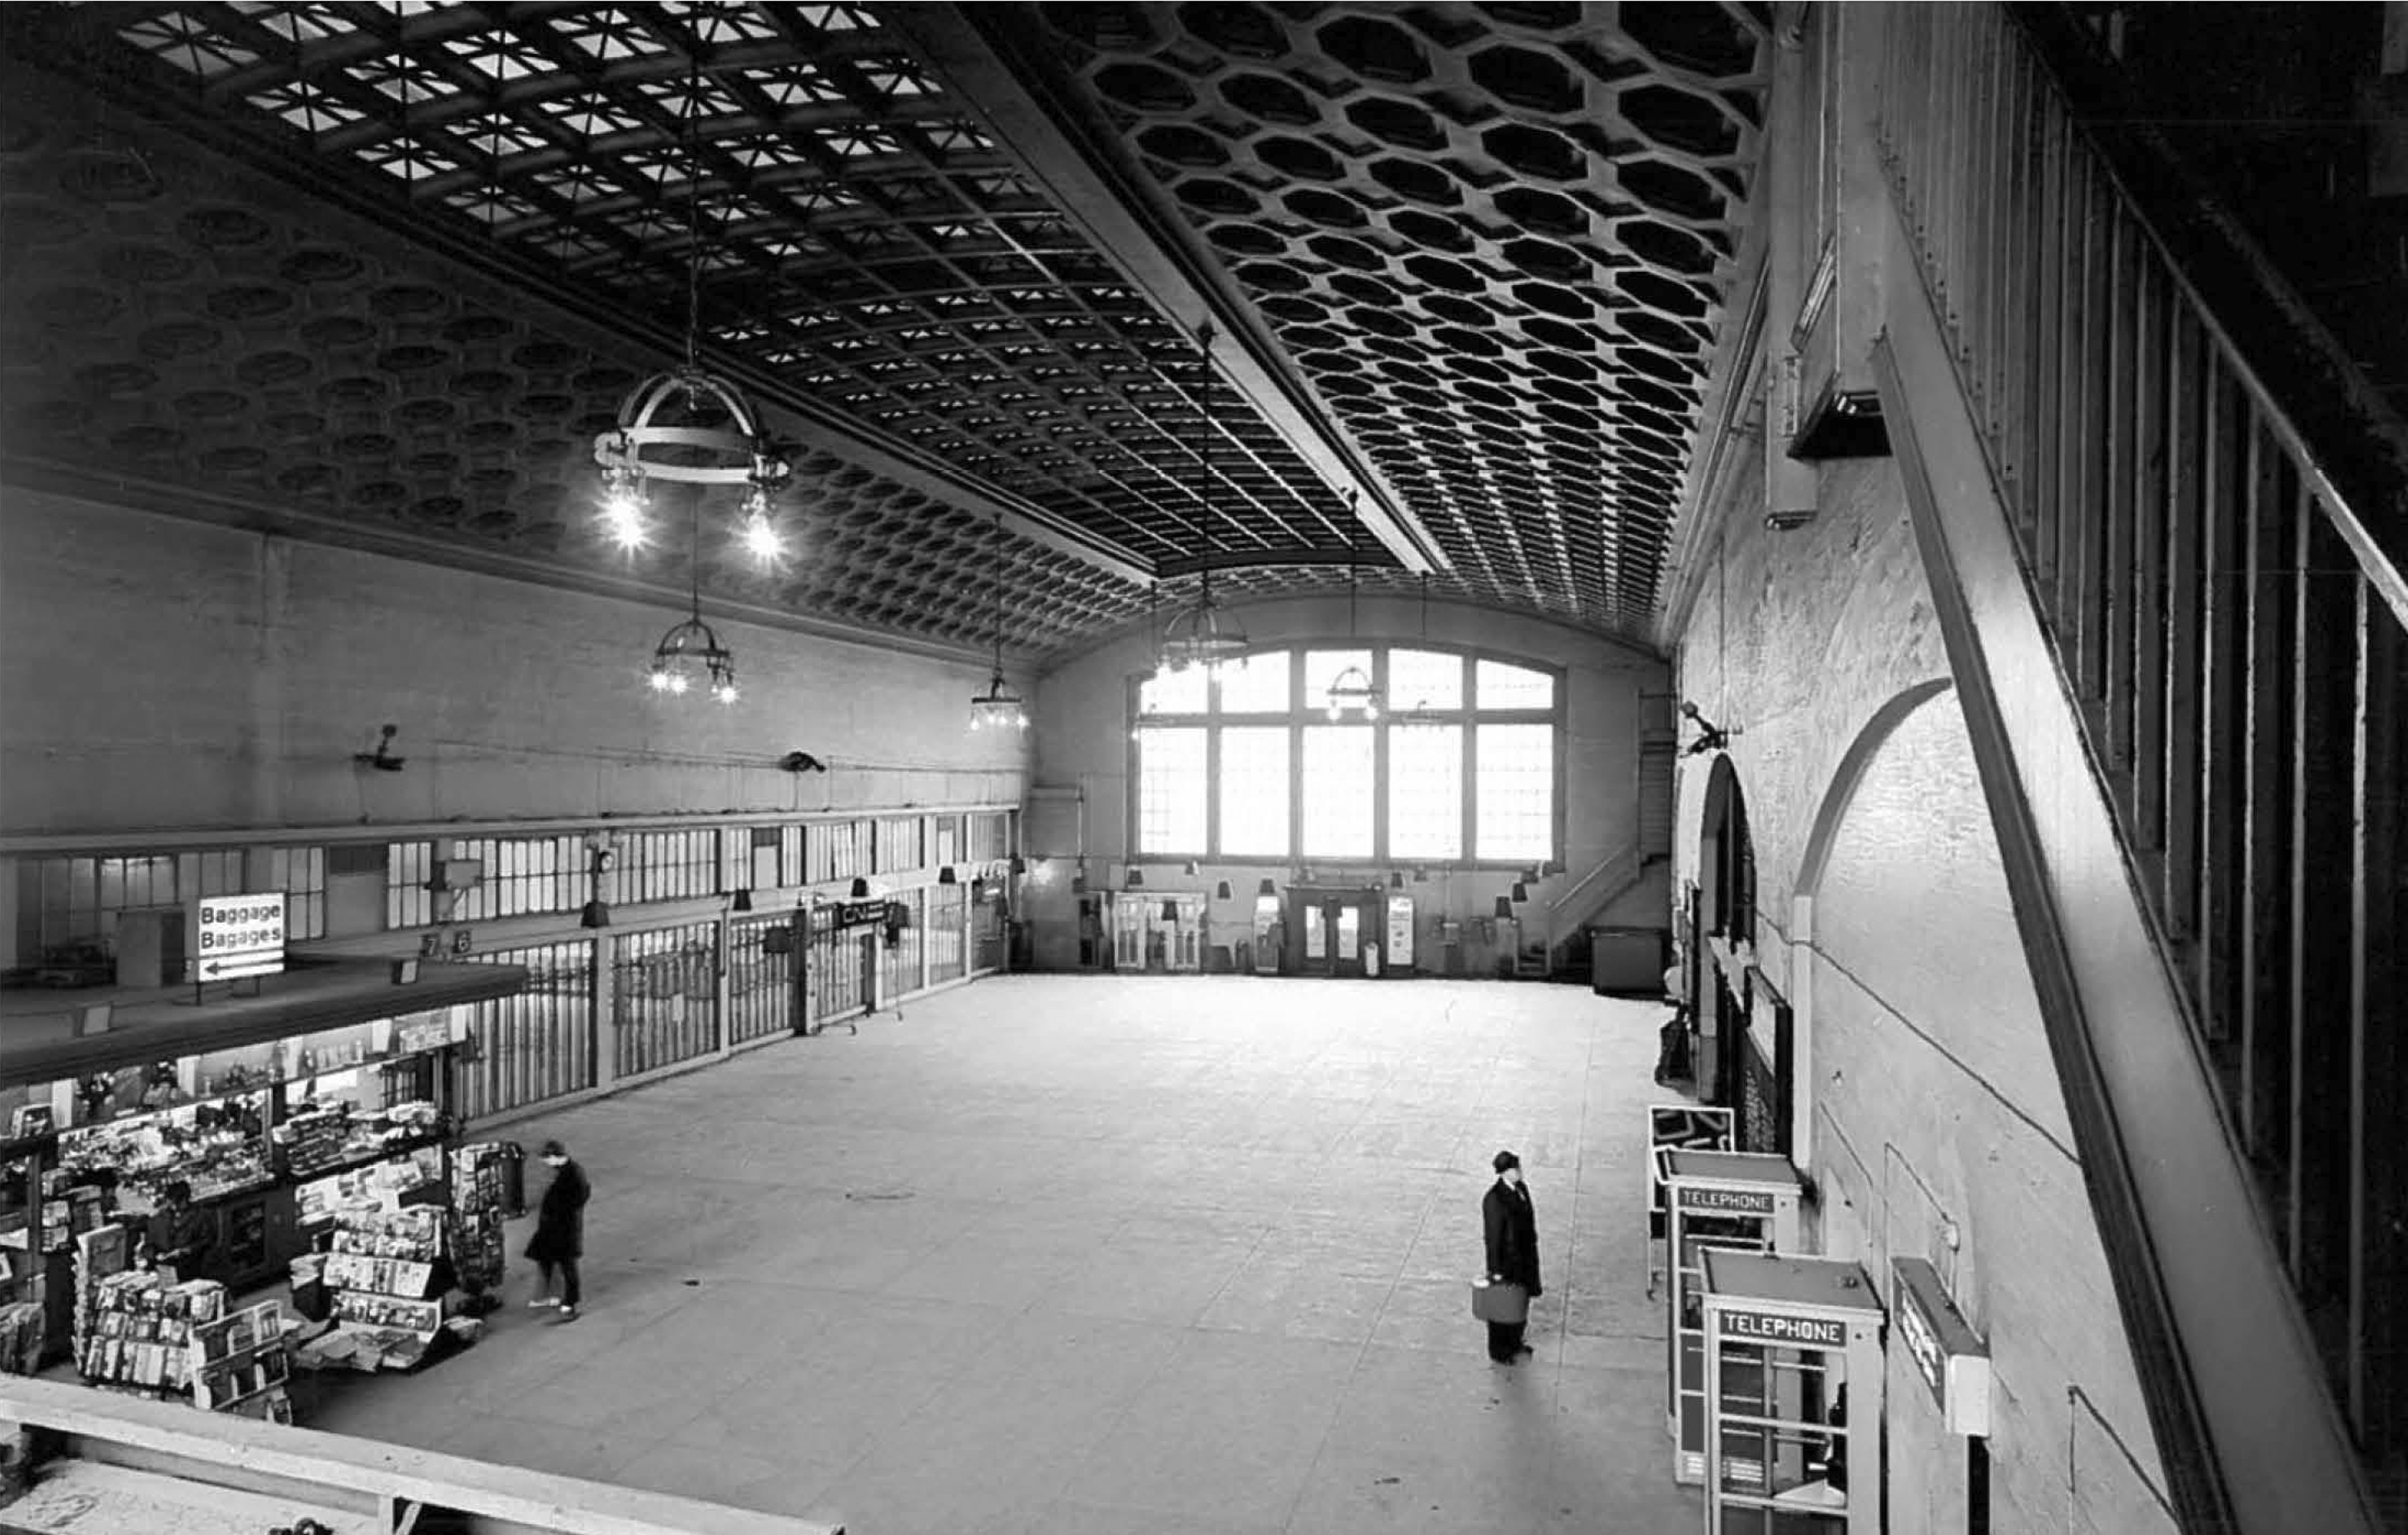 The concourse was the last chance for passengers to buy a magazine or make a phone call before boarding their train. The high-ceilinged hall became the temporary Senate Chamber in 2019.